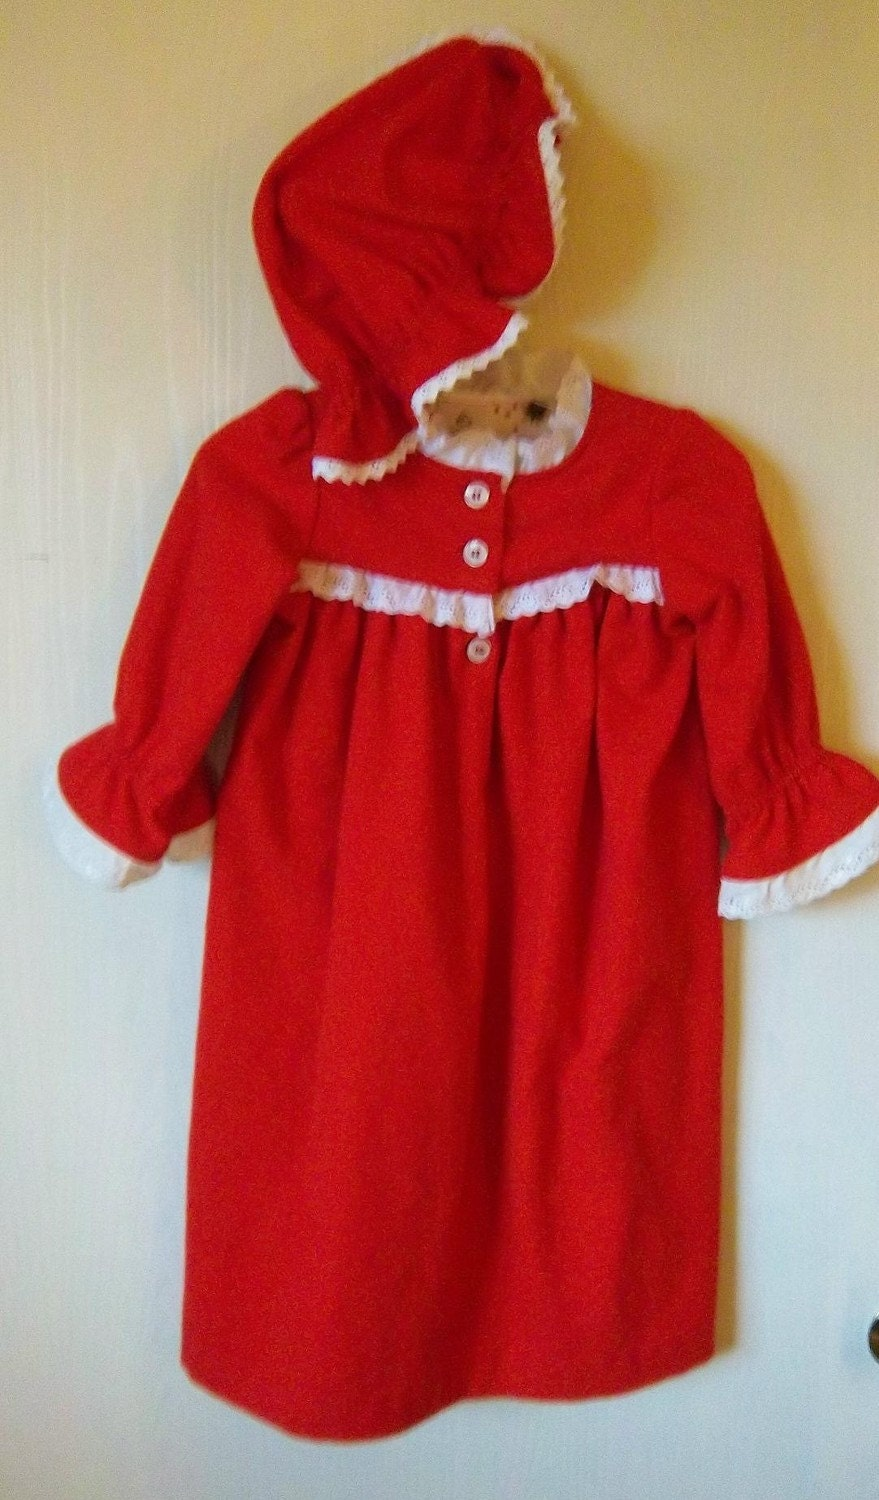 Mrs claus nightgown with cap